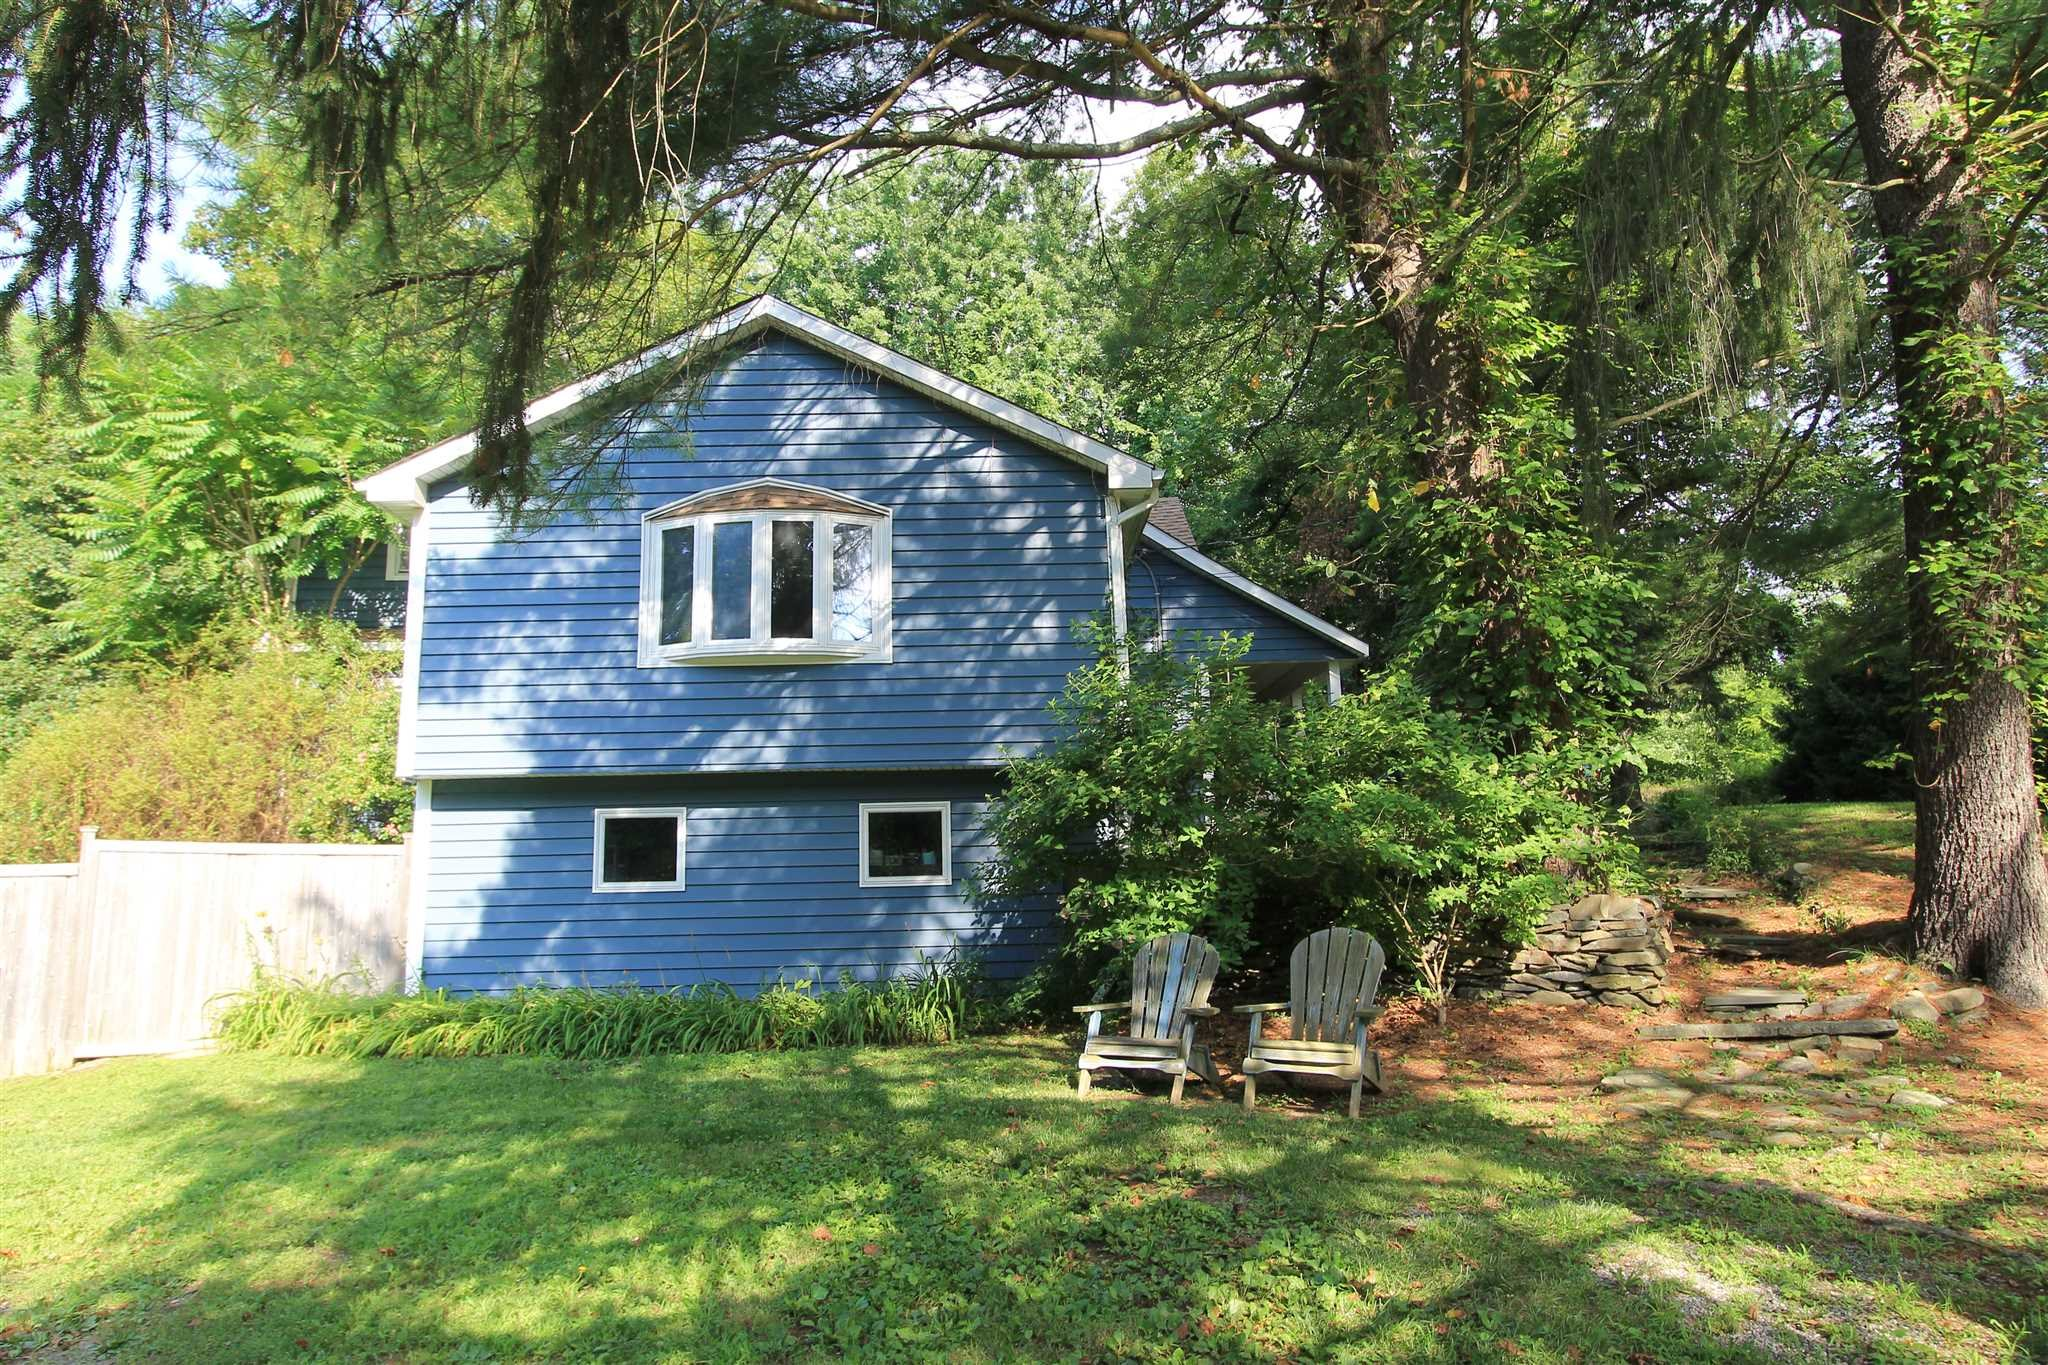 Single Family Home for Sale at 51 UPPER HOOK ROAD 51 UPPER HOOK ROAD Rhinebeck, New York 12572 United States